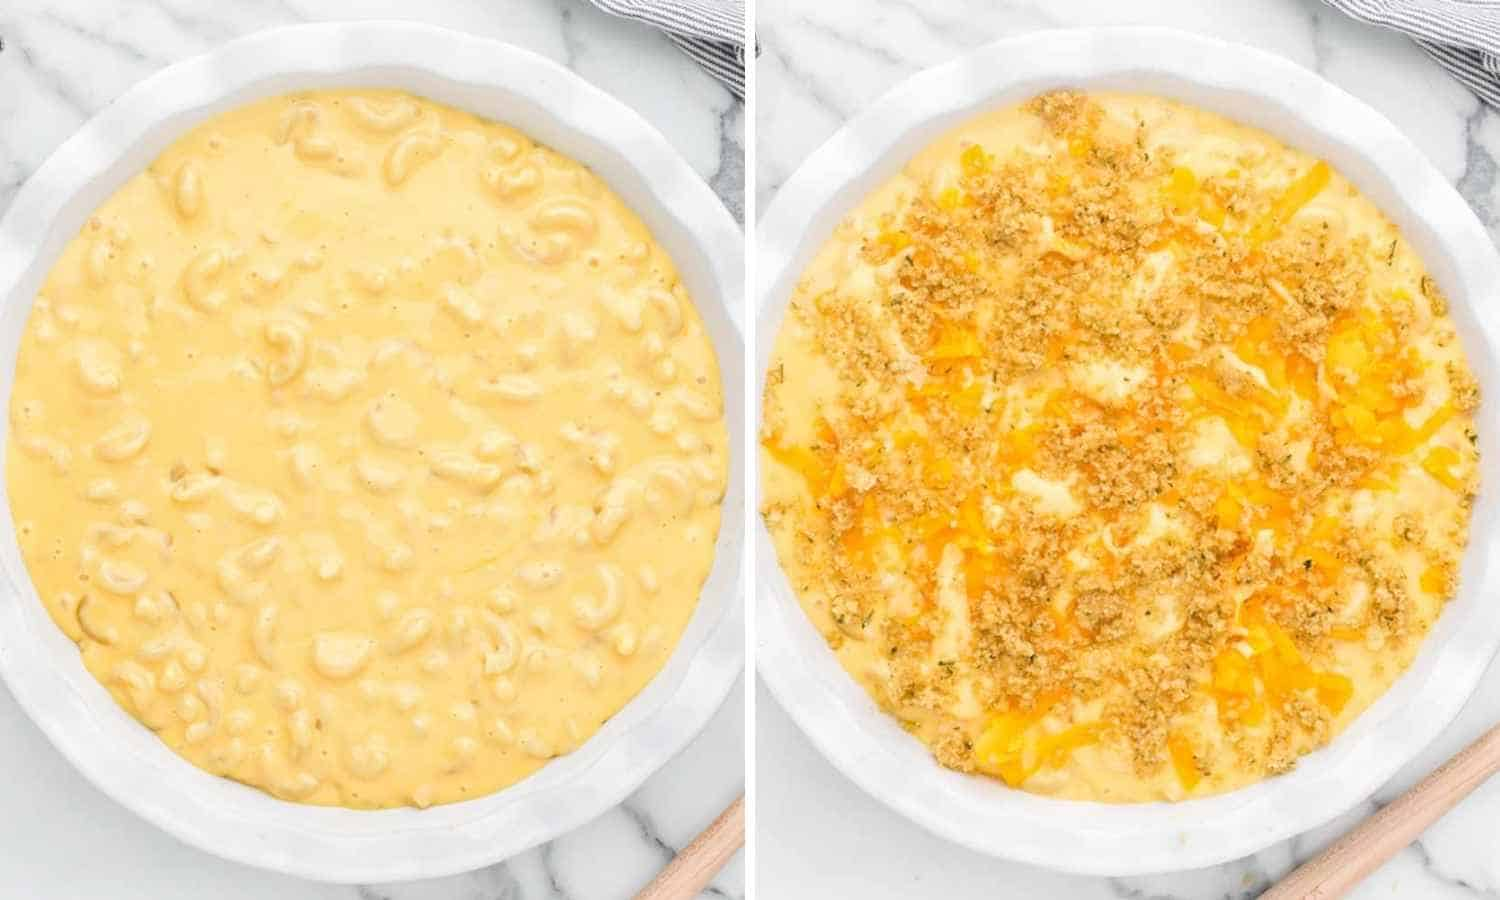 Collage of two images showing the mac and cheese in a casserole dish before baking